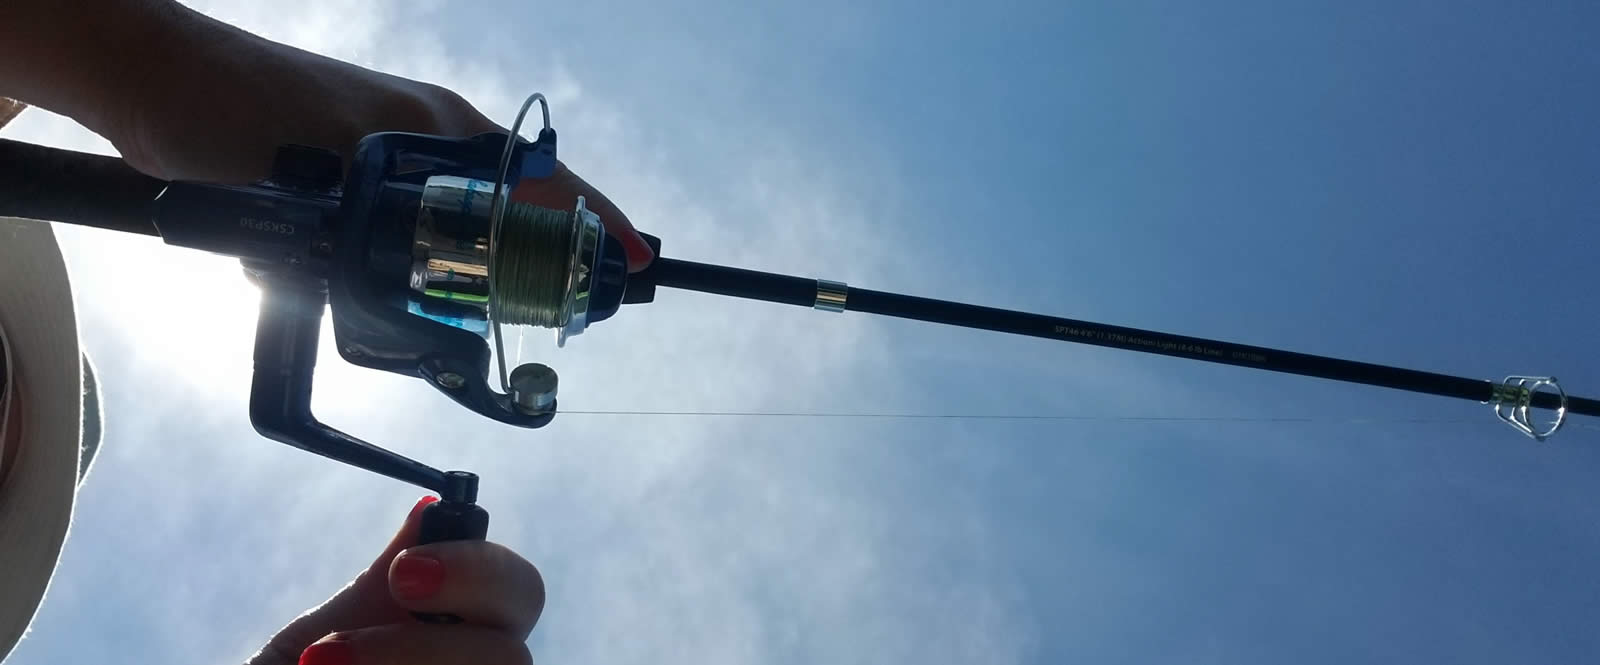 Fishing pole and blue sky in the background